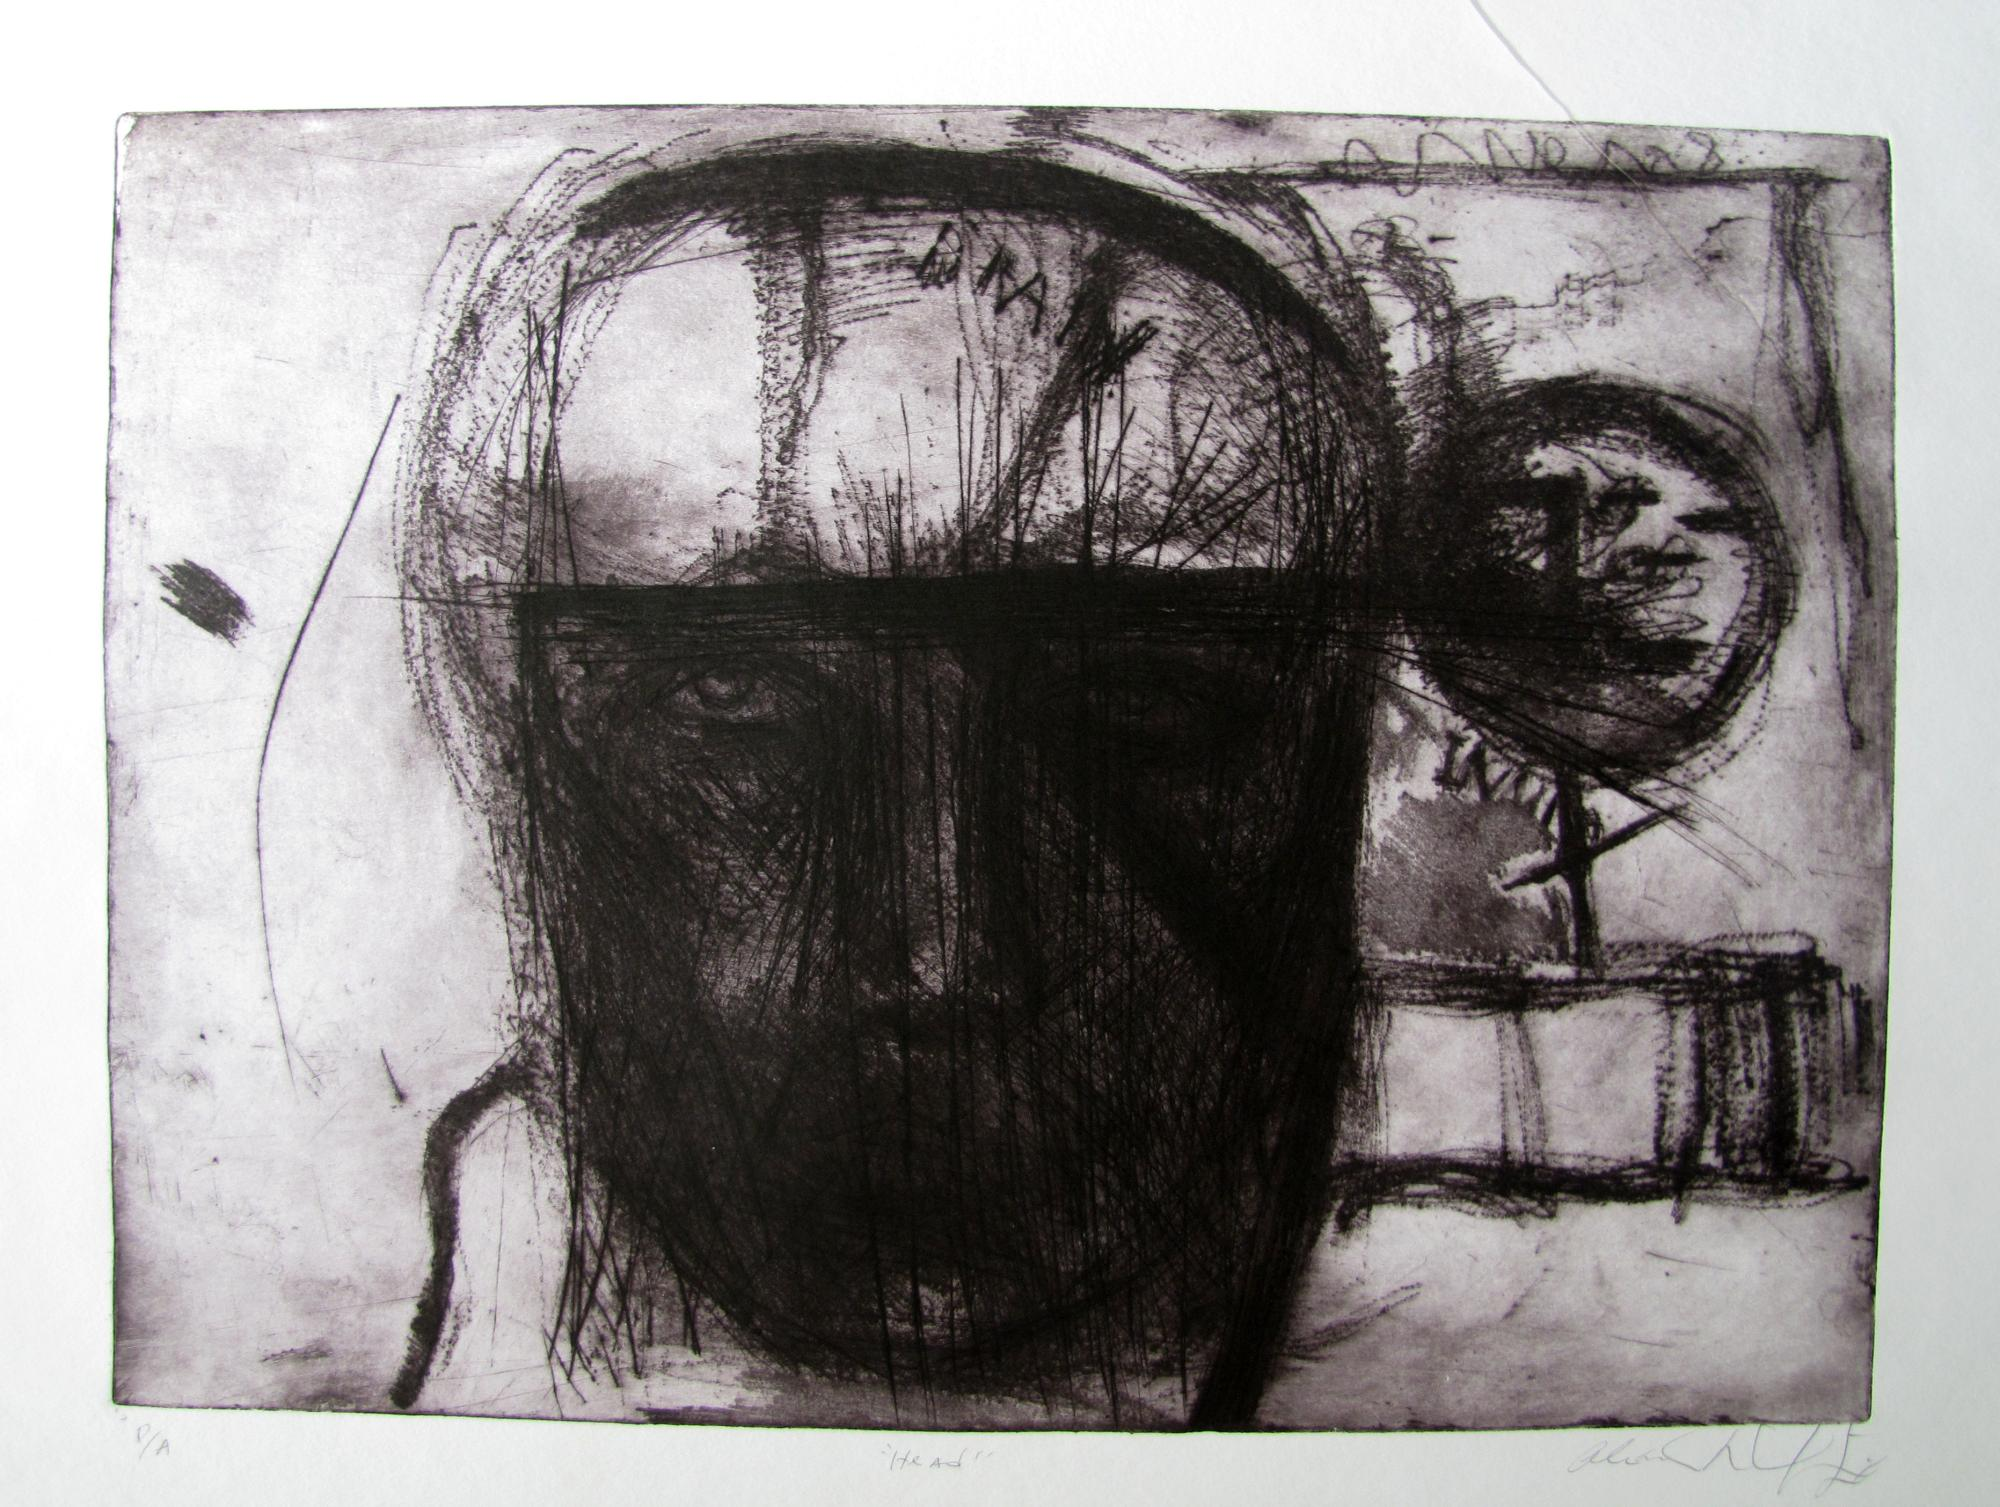 Head Etching .2003. 24 x 18 inches